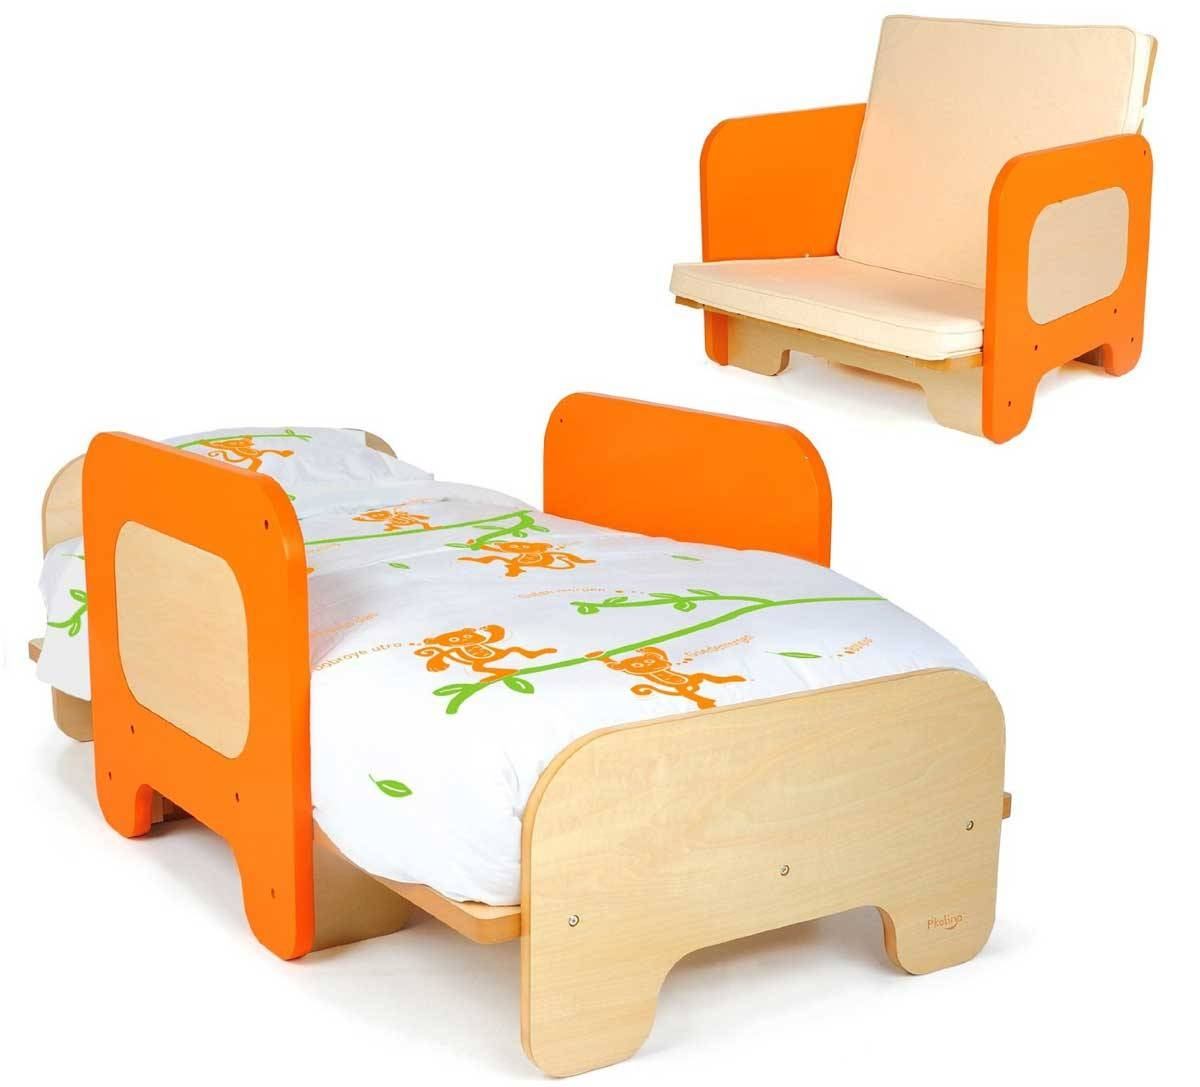 Toddler Bed Convertible Flower : Toddler Bed Convertible for Sofa Beds for Baby (Image 14 of 15)